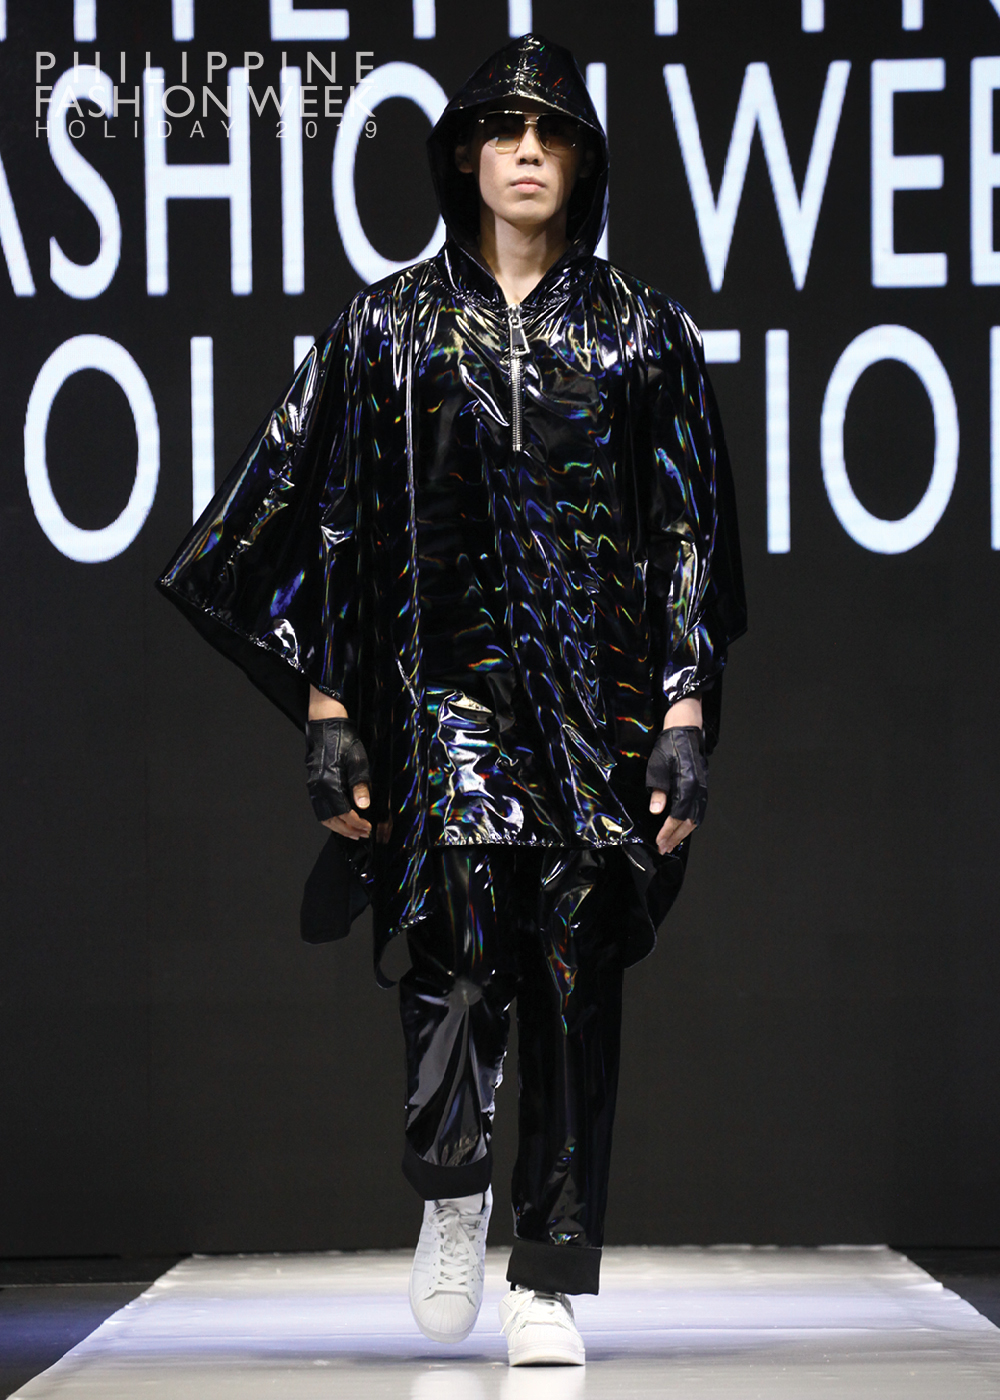 PhFW_collection show10.jpg